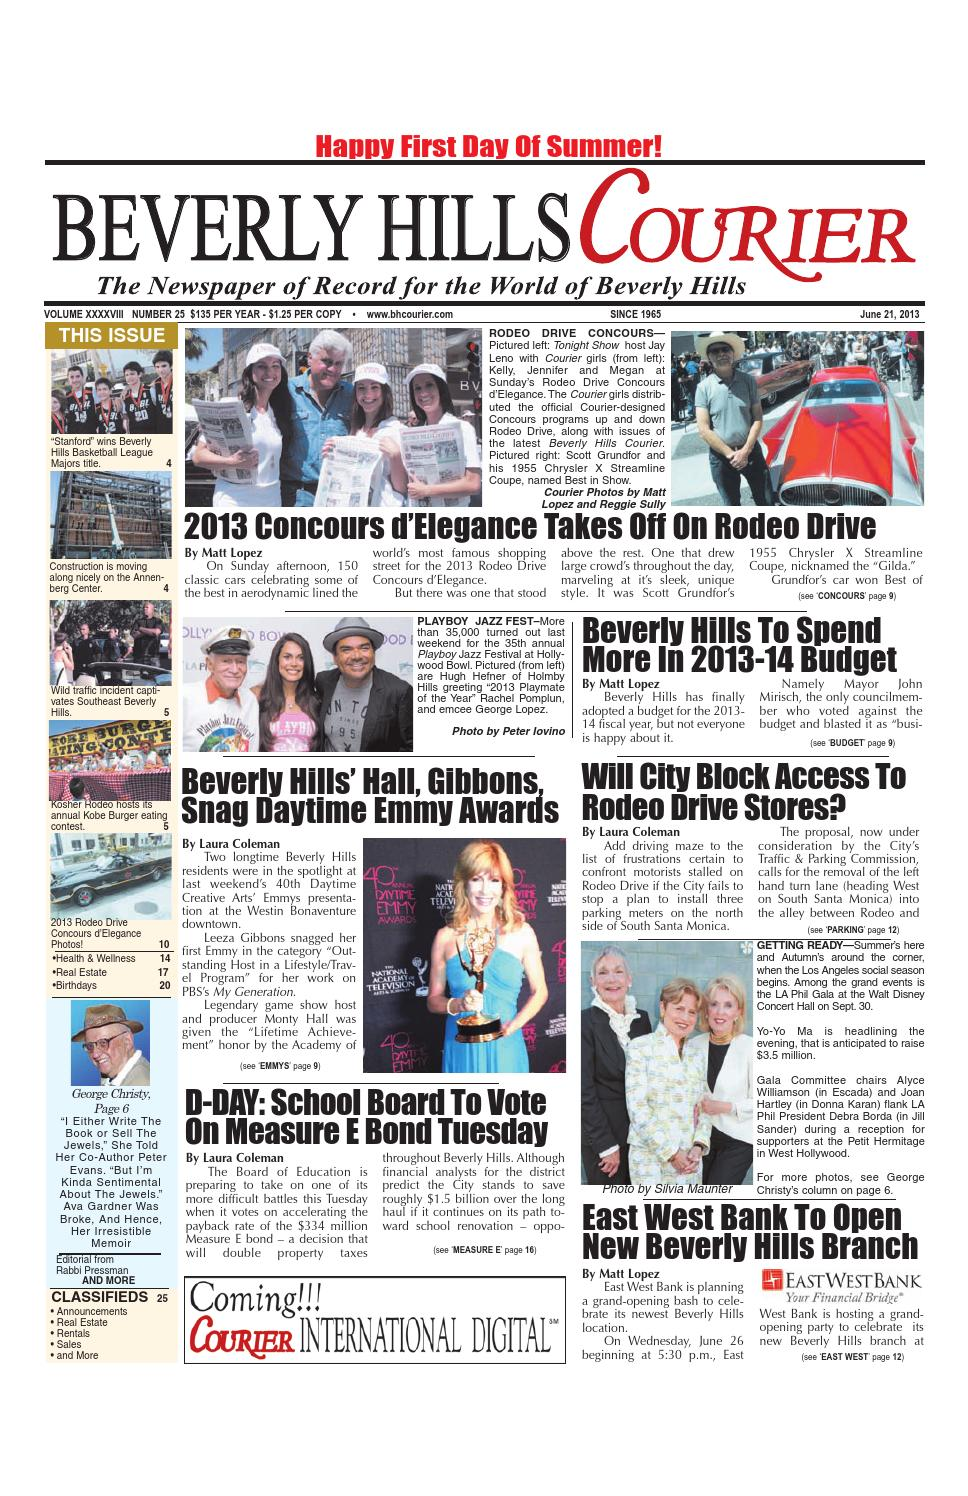 Beverly Hills Courier June 21, 2013 E-edition by The Beverly